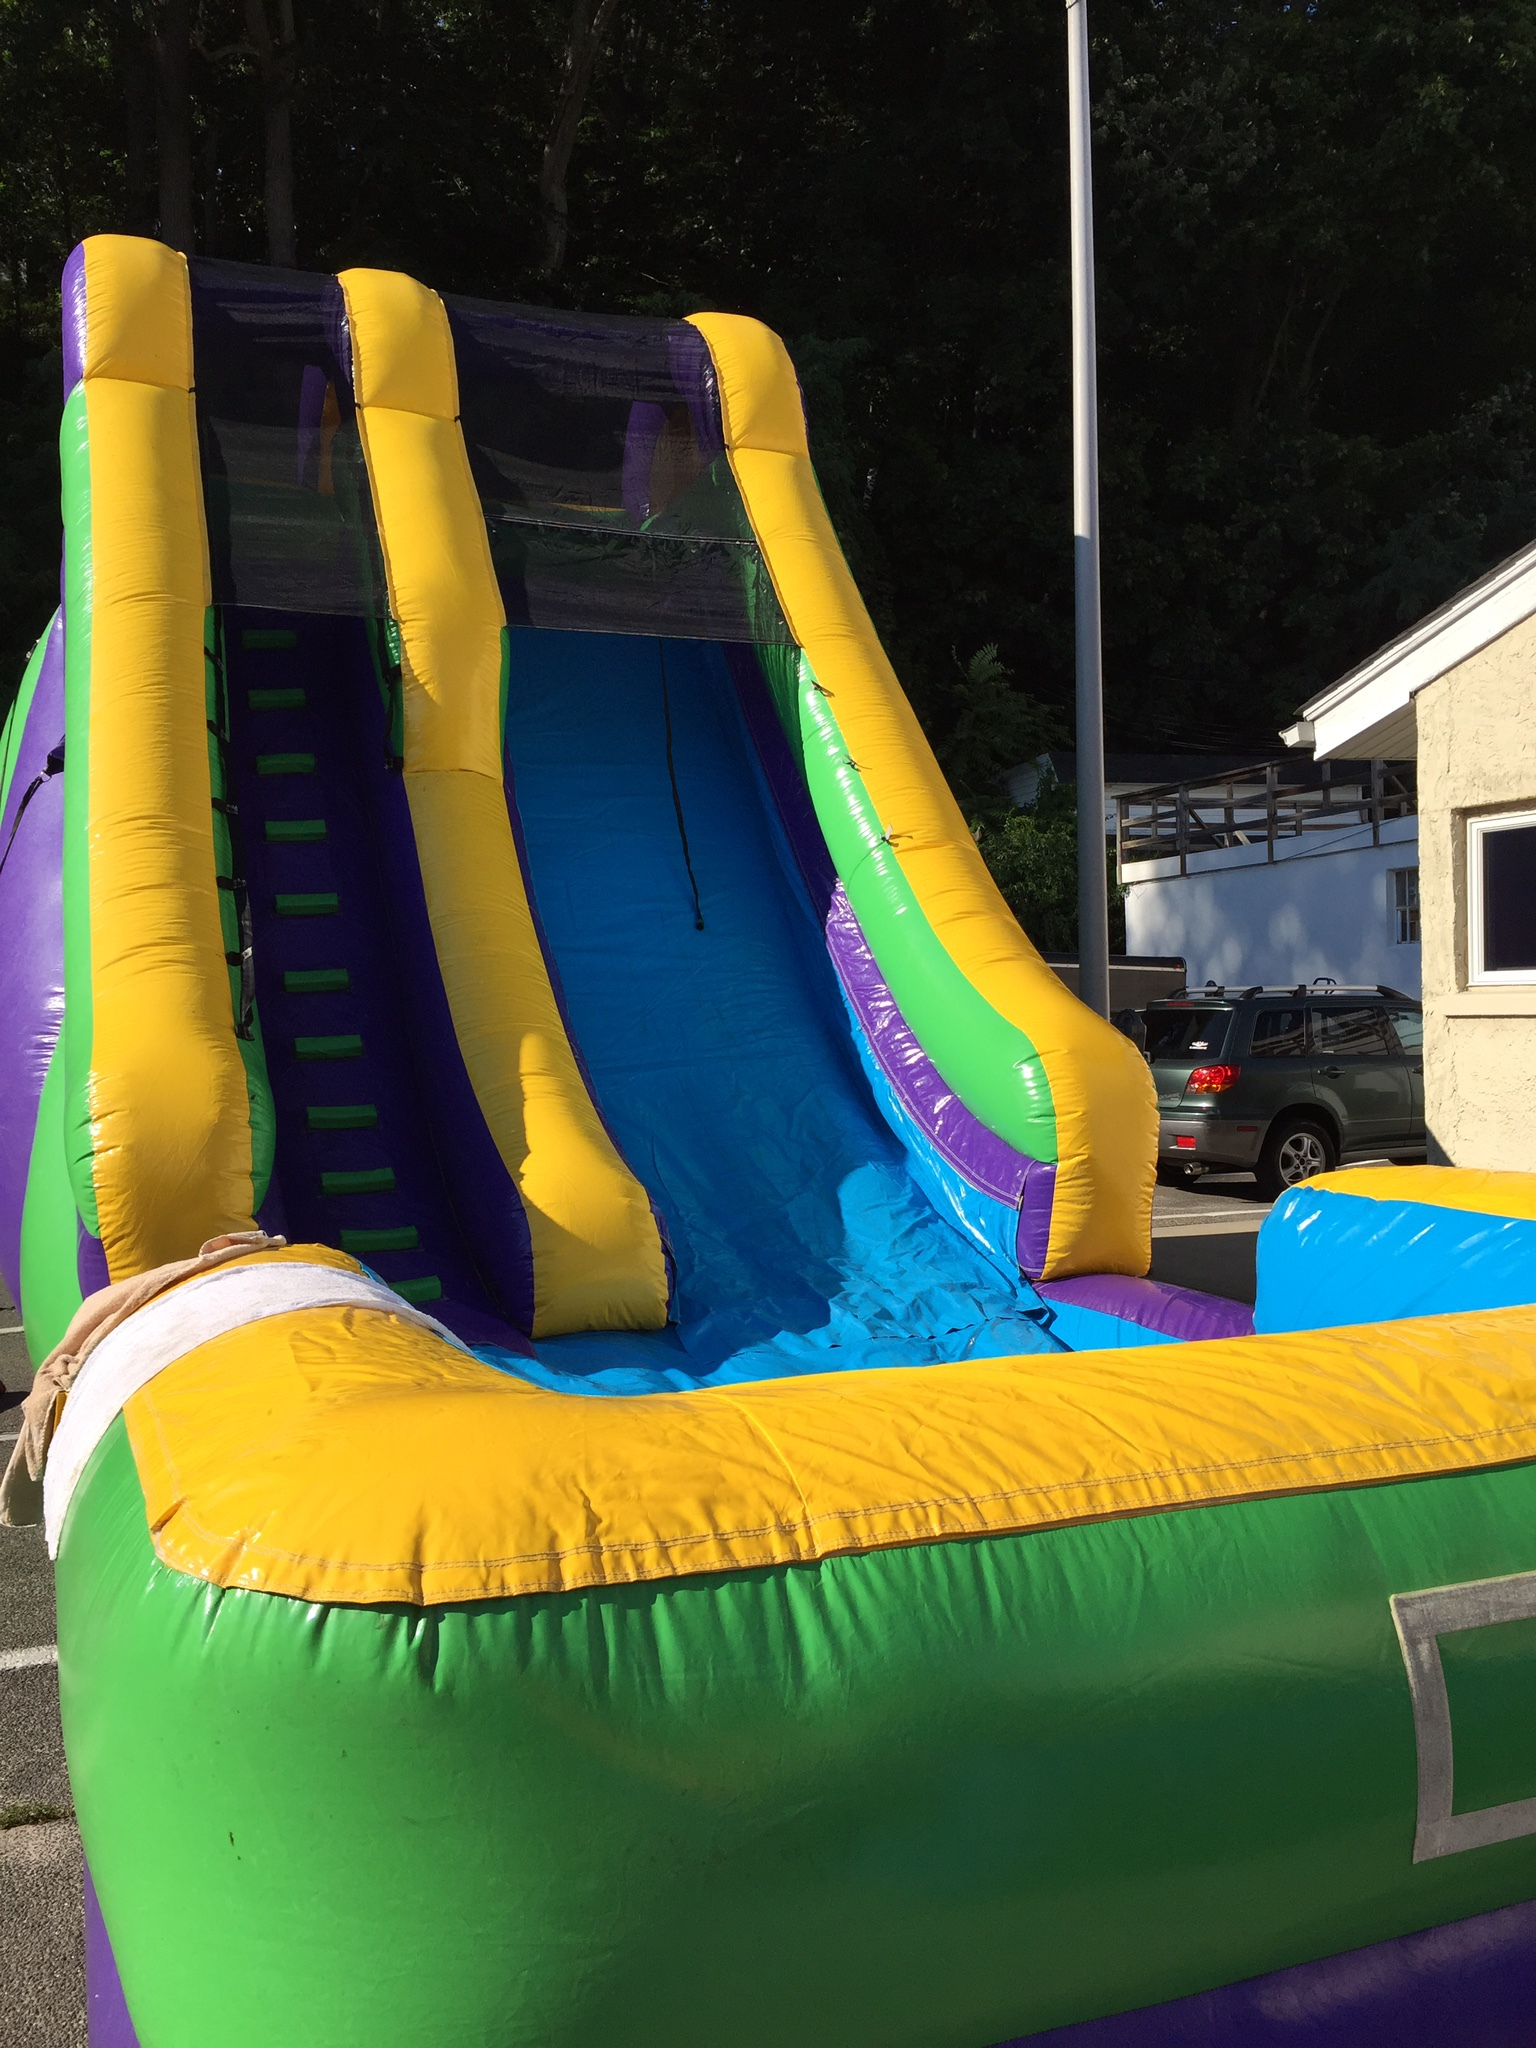 23 Foot Wet/Dry Inflatable Slide